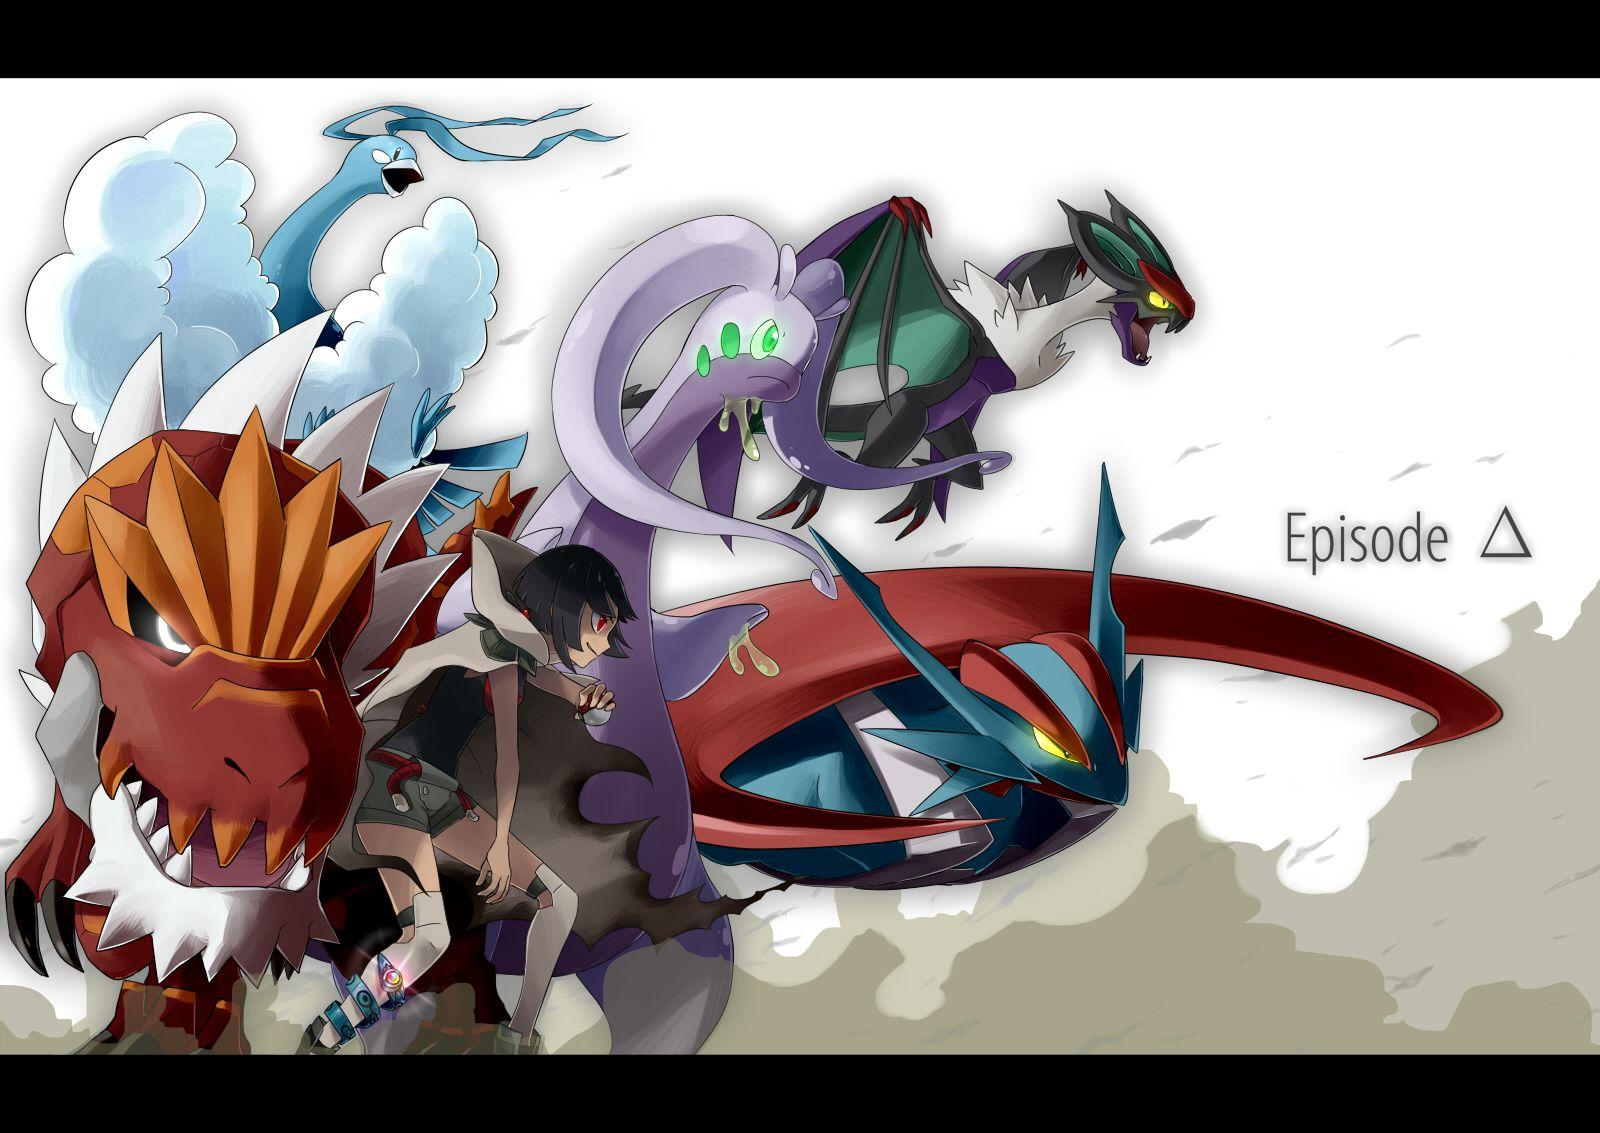 altaria, goodra, higana, mega salamence, noivern, and others ...